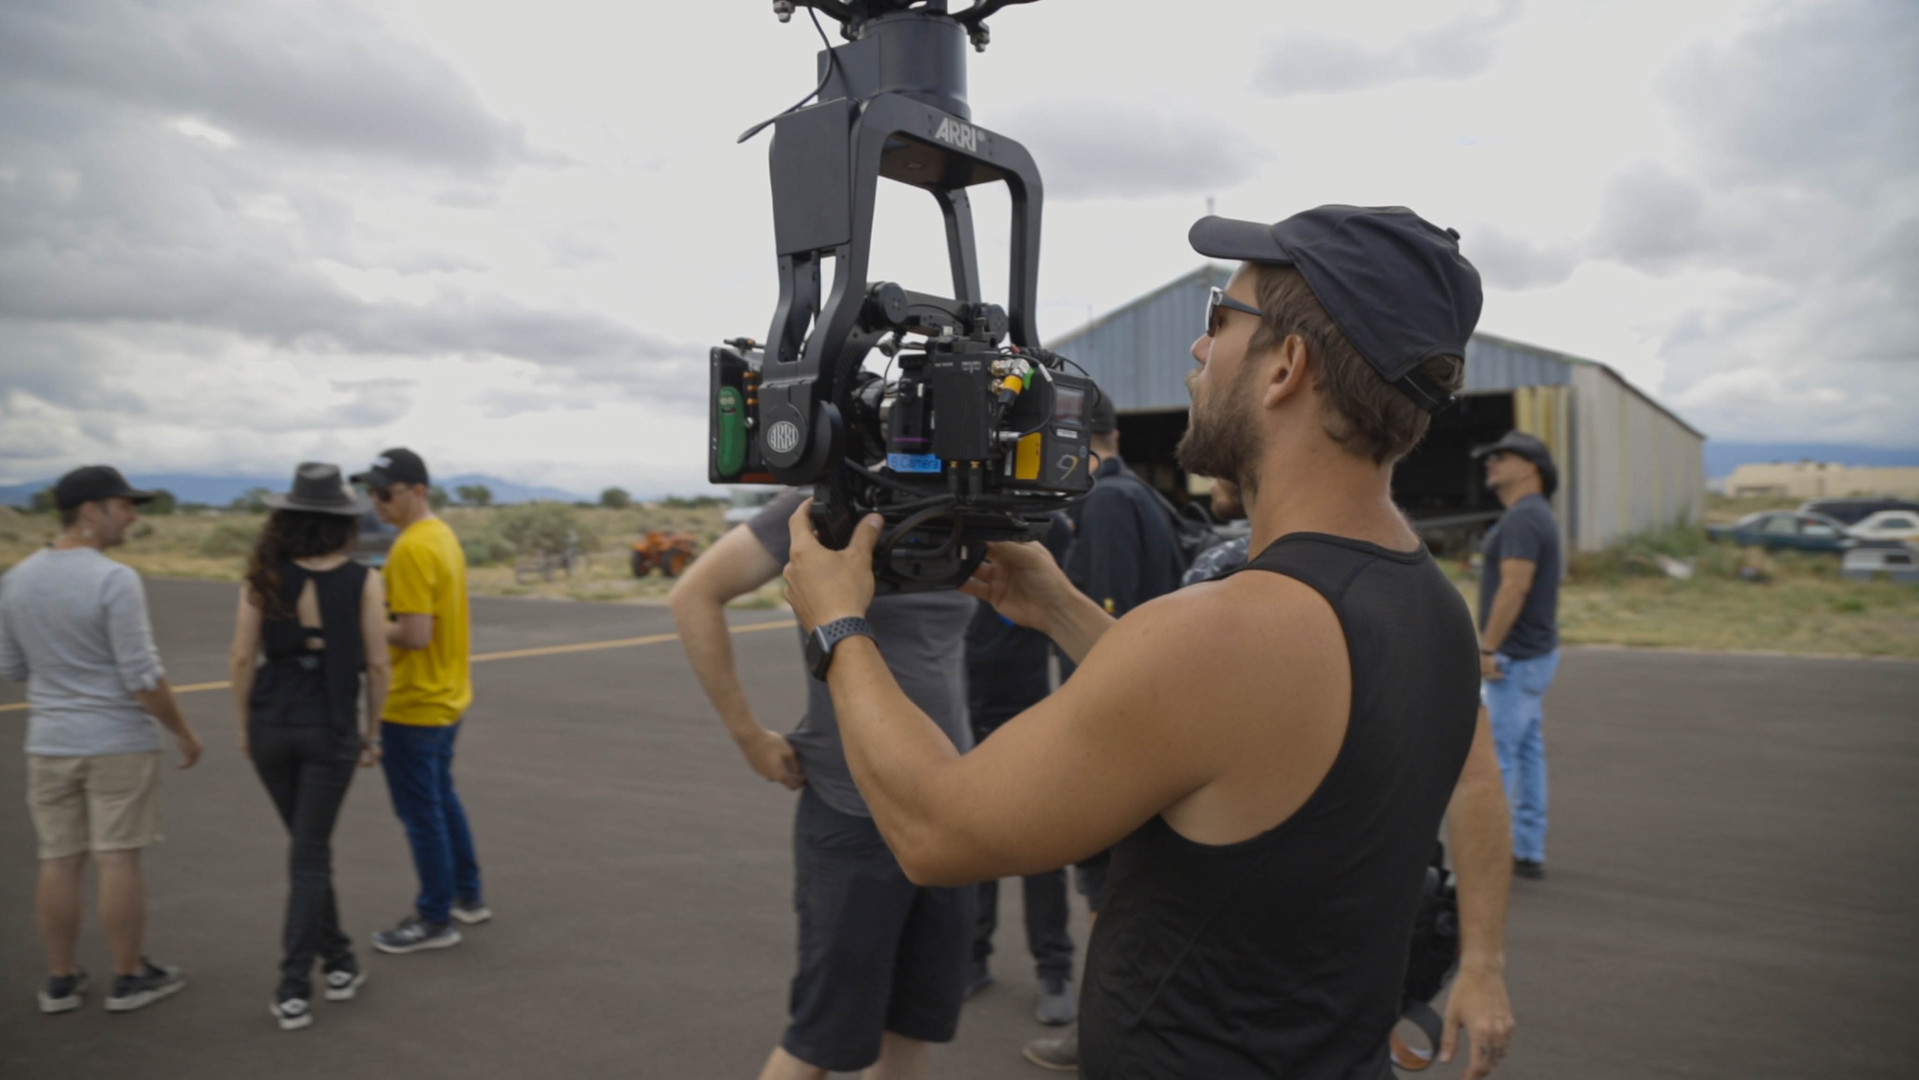 Russ Securing the RED Camera